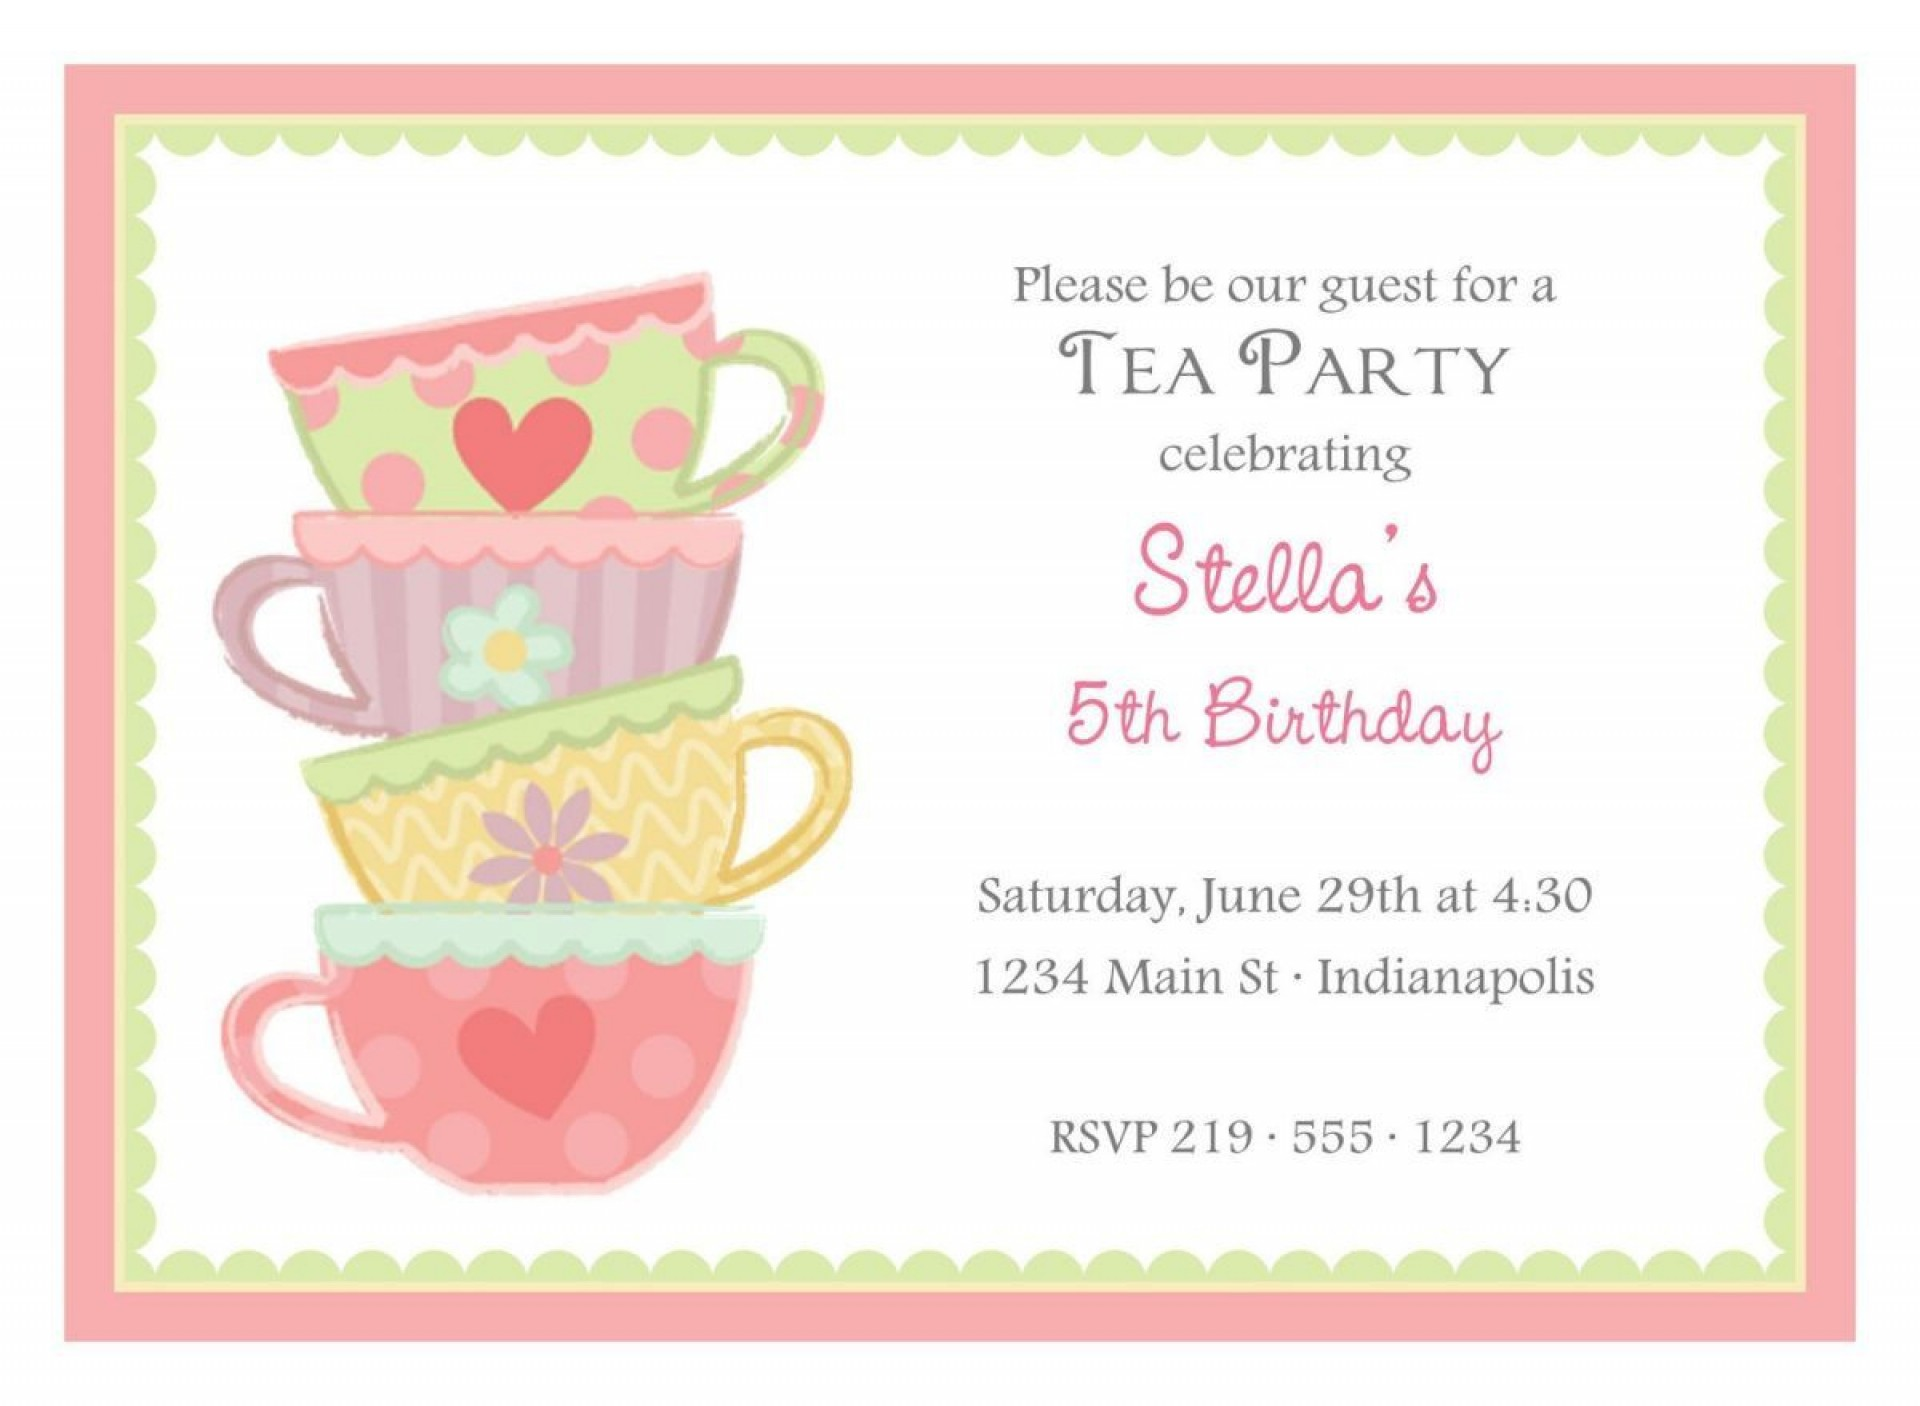 003 Formidable Tea Party Invitation Template Image  Wording Vintage Free Sample1920